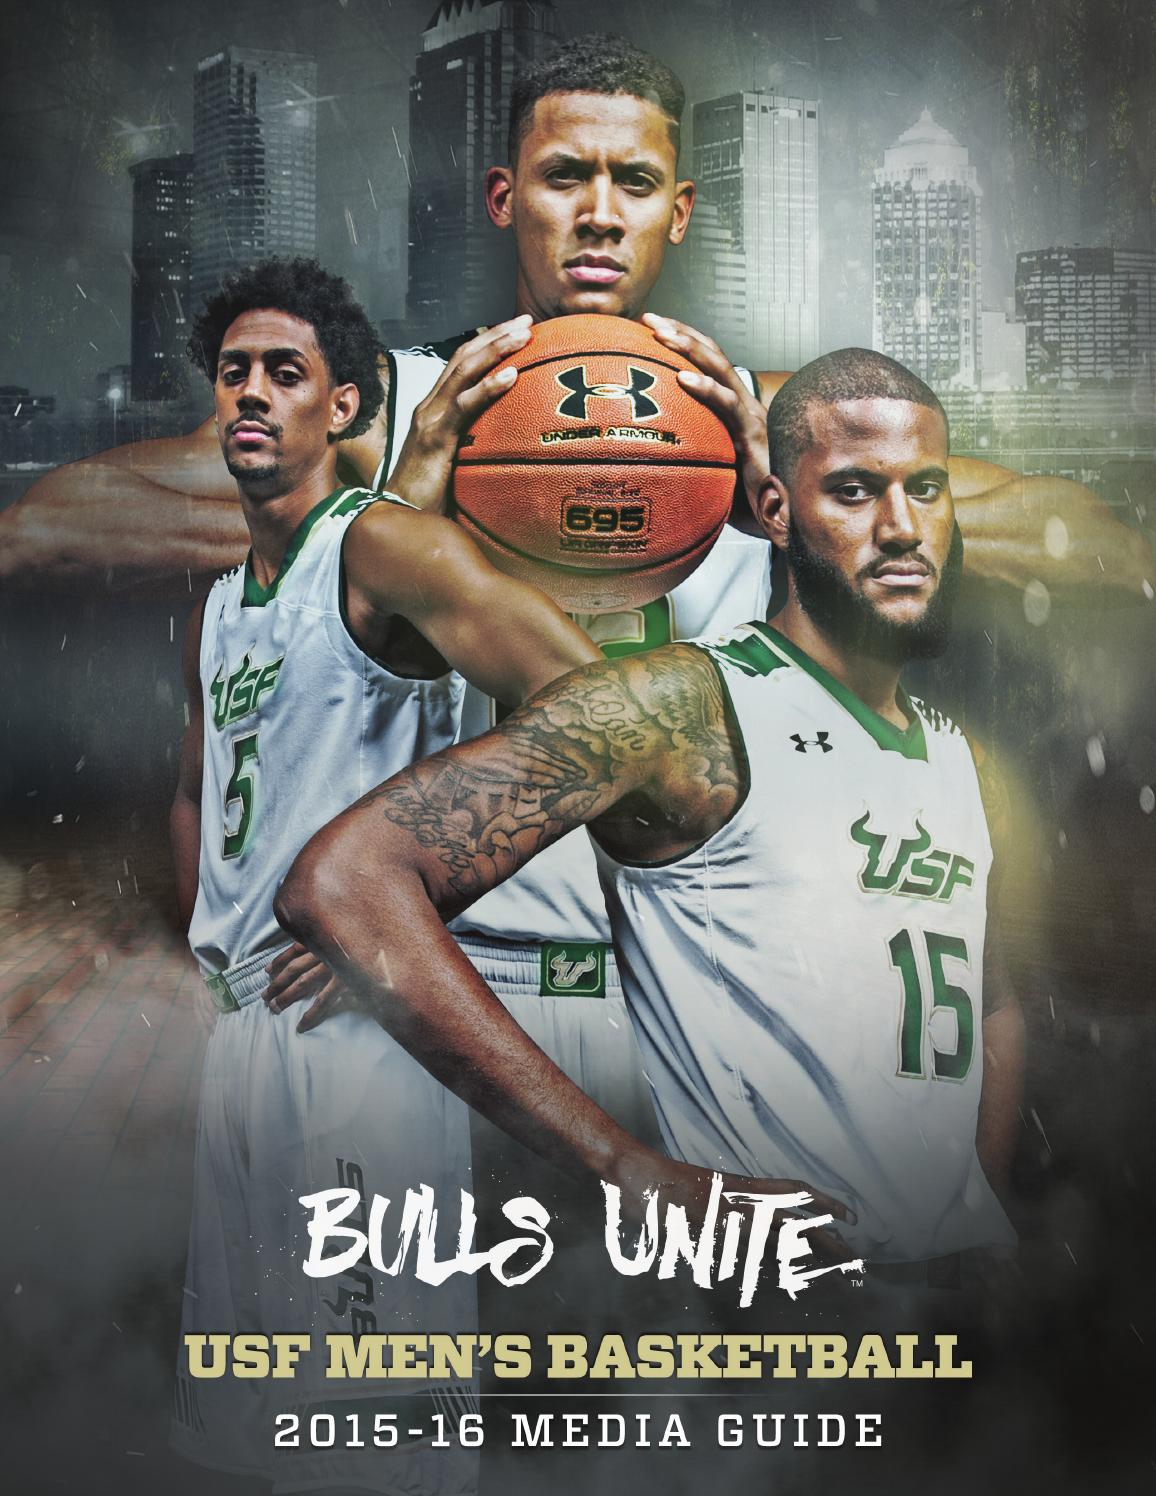 2015 16 Usf Men S Basketball Media Guide By Usf Bulls Issuu More information from our data providers and their future plans. 2015 16 usf men s basketball media